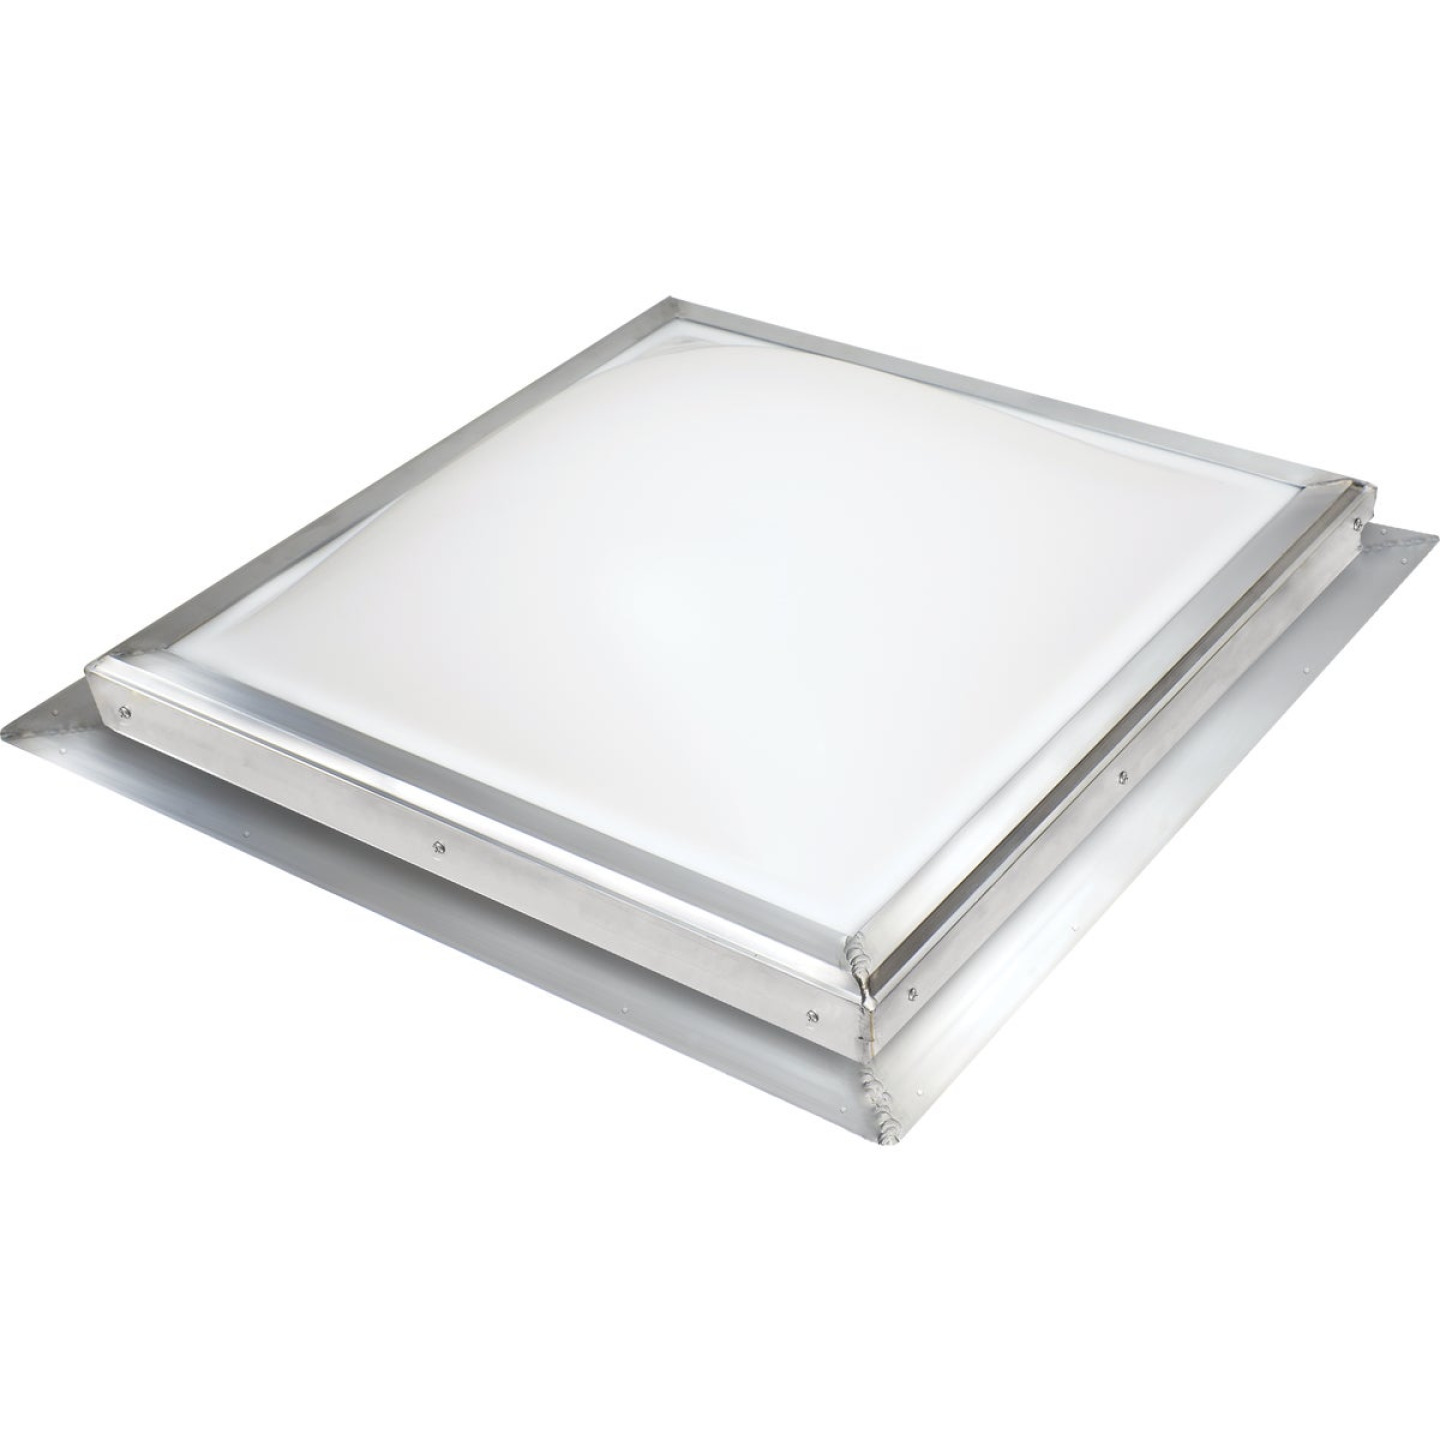 Kennedy Skylights 24 In. x 24 In. White Dome Insulated Skylight Image 1